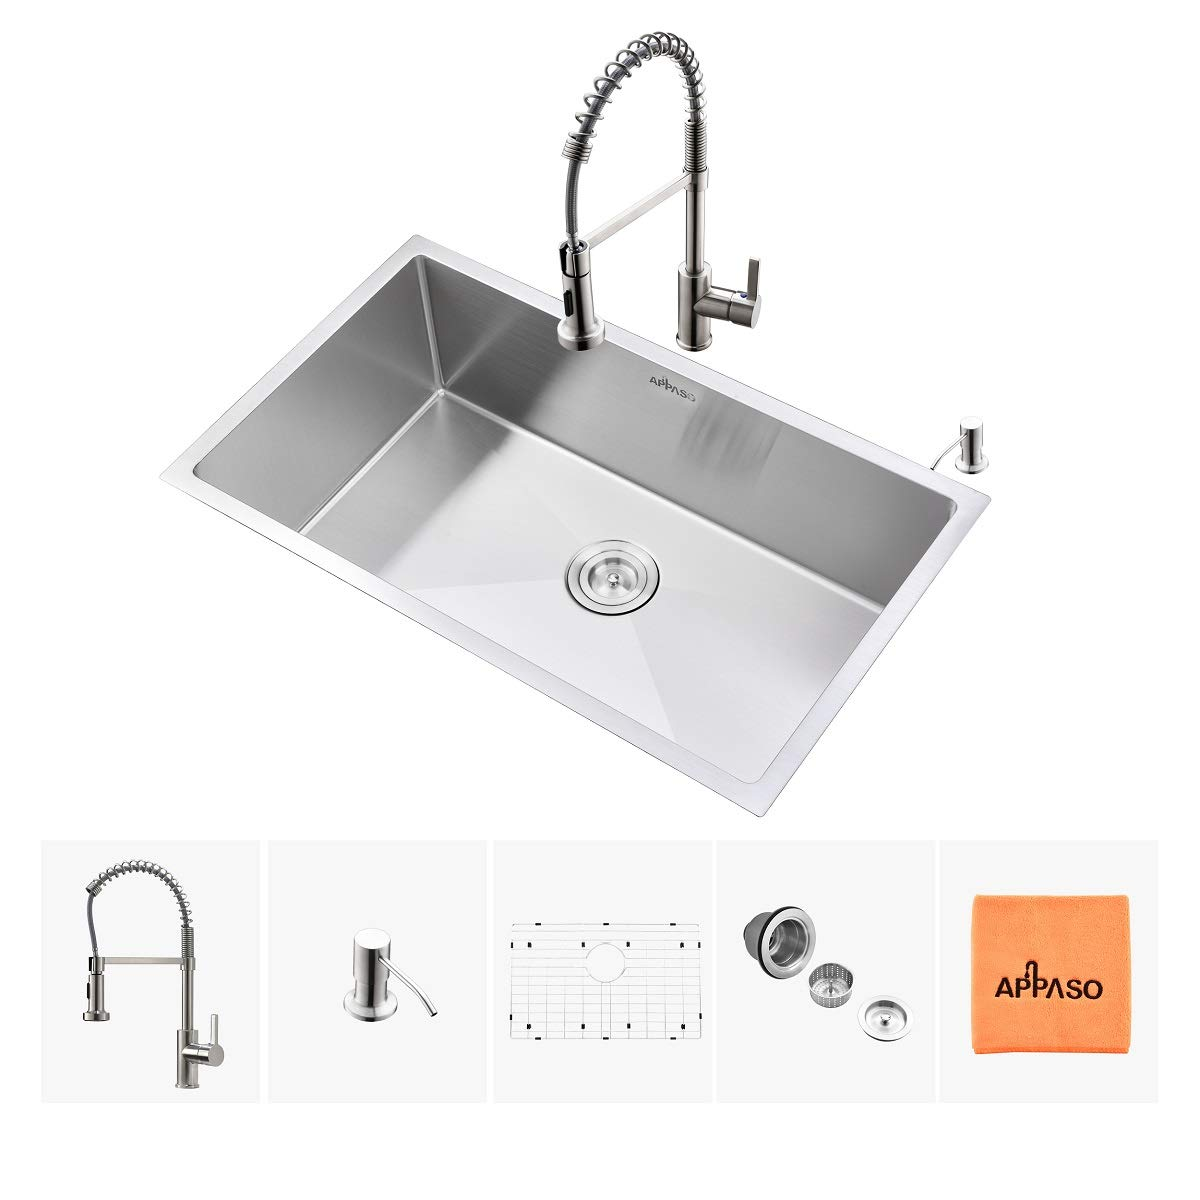 APPASO Kitchen Sink and Faucet Combo Set, 12 Inches Stainless Steel Single  Bowl Kitchen Sink Undermount and Commercial Pull Down Kitchen Faucet Kit